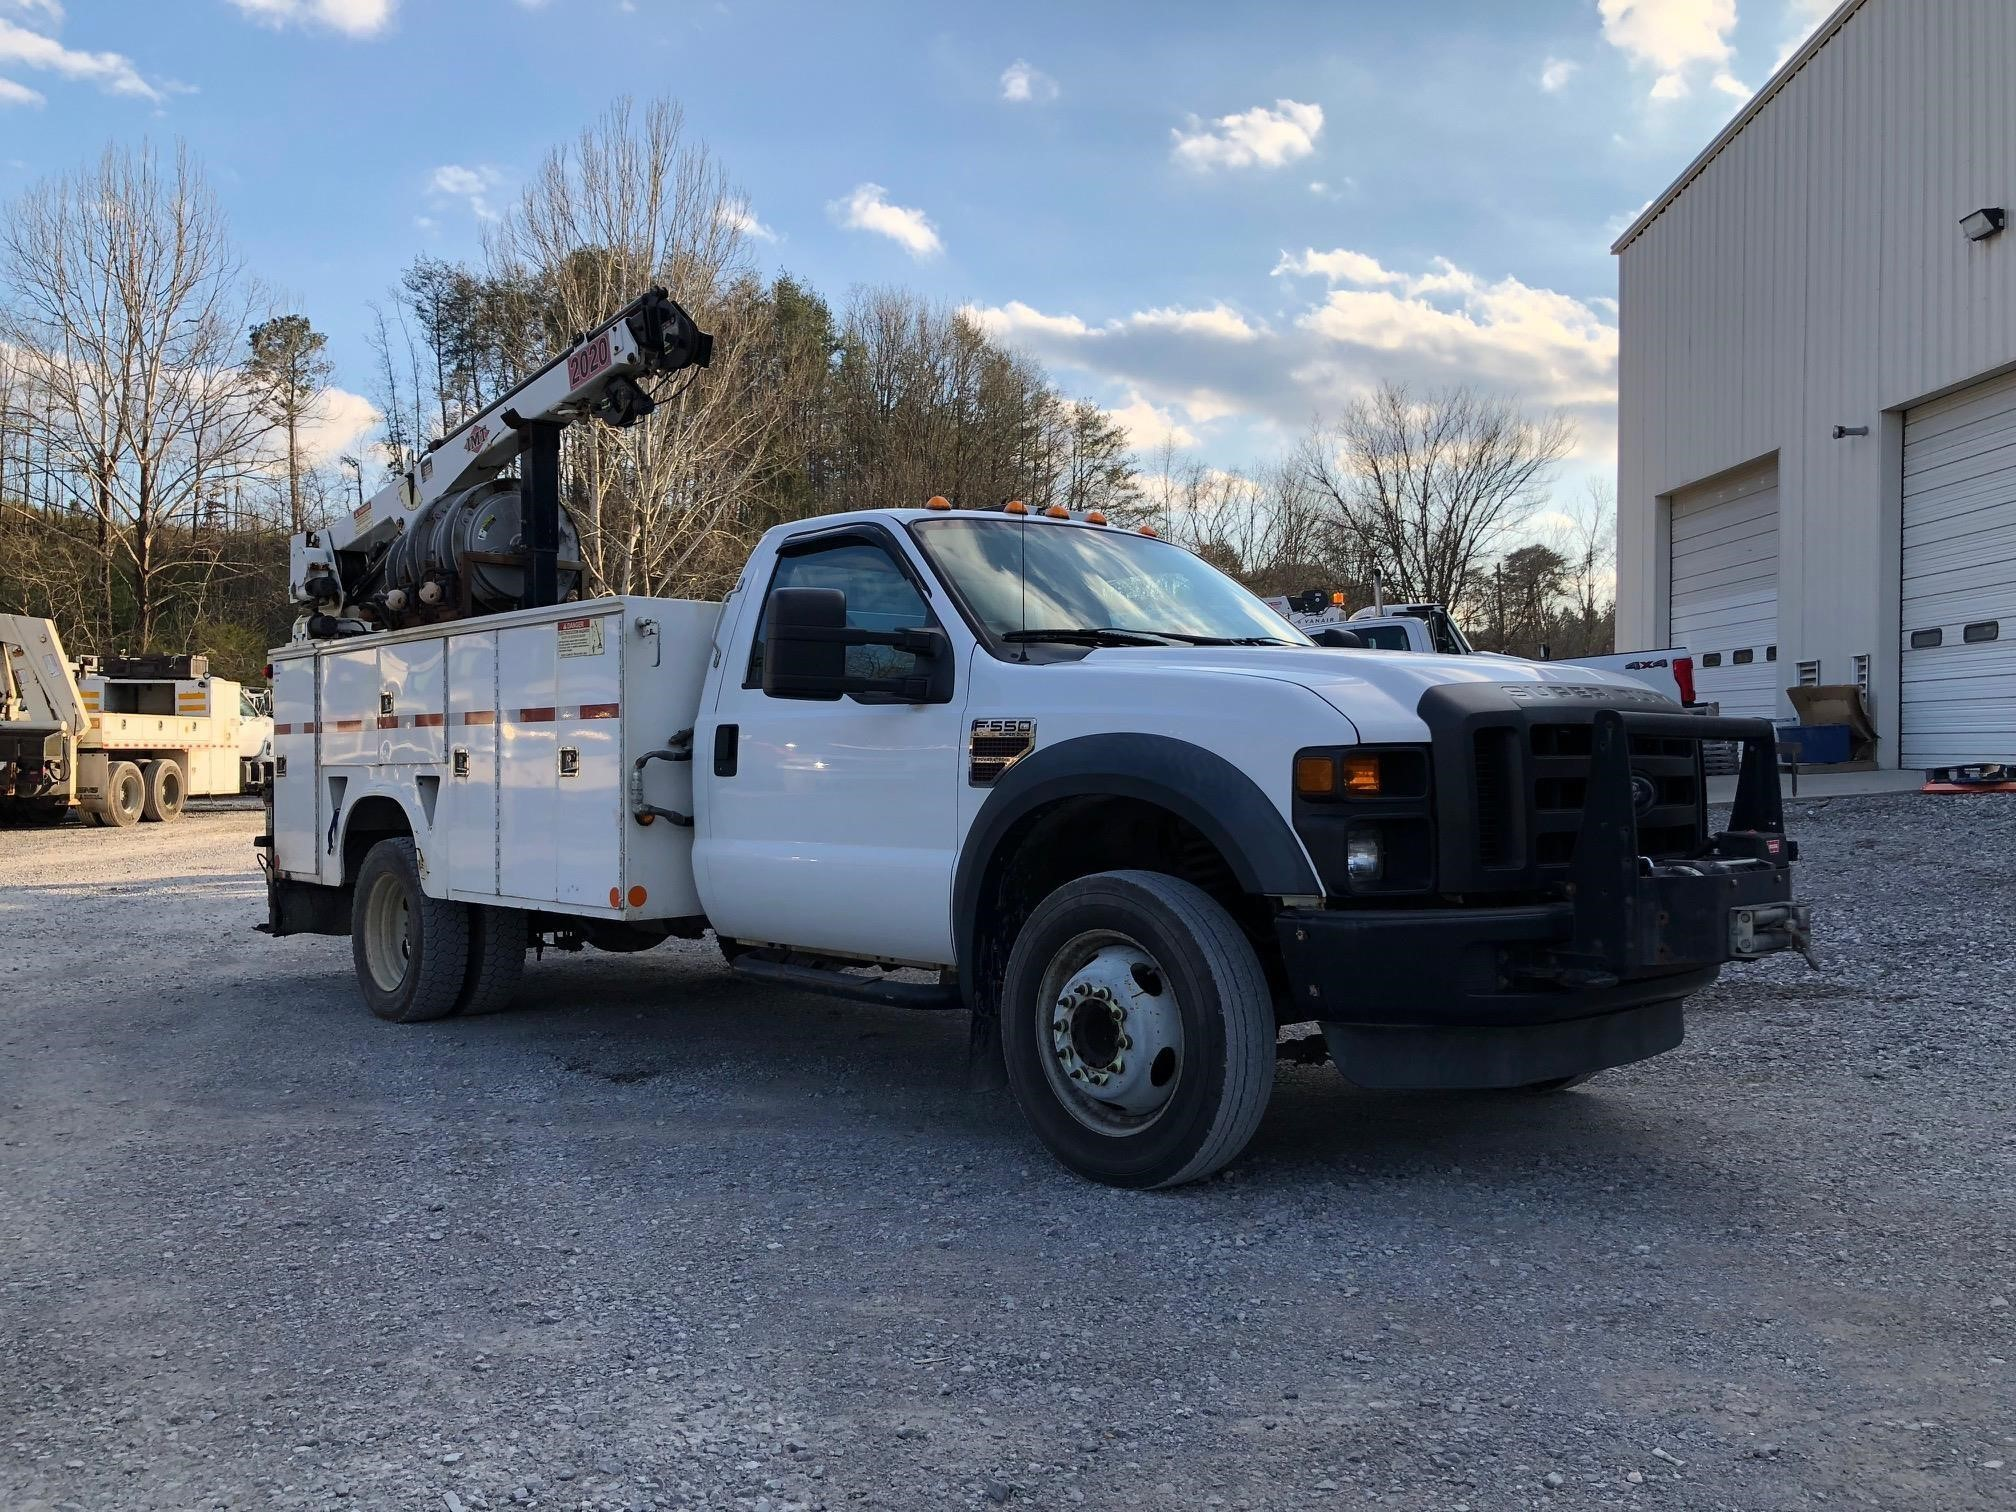 Ford F550 For Sale >> 2008 Imt 2020 Mounted On 2008 Ford F550 For Sale In Chattanooga